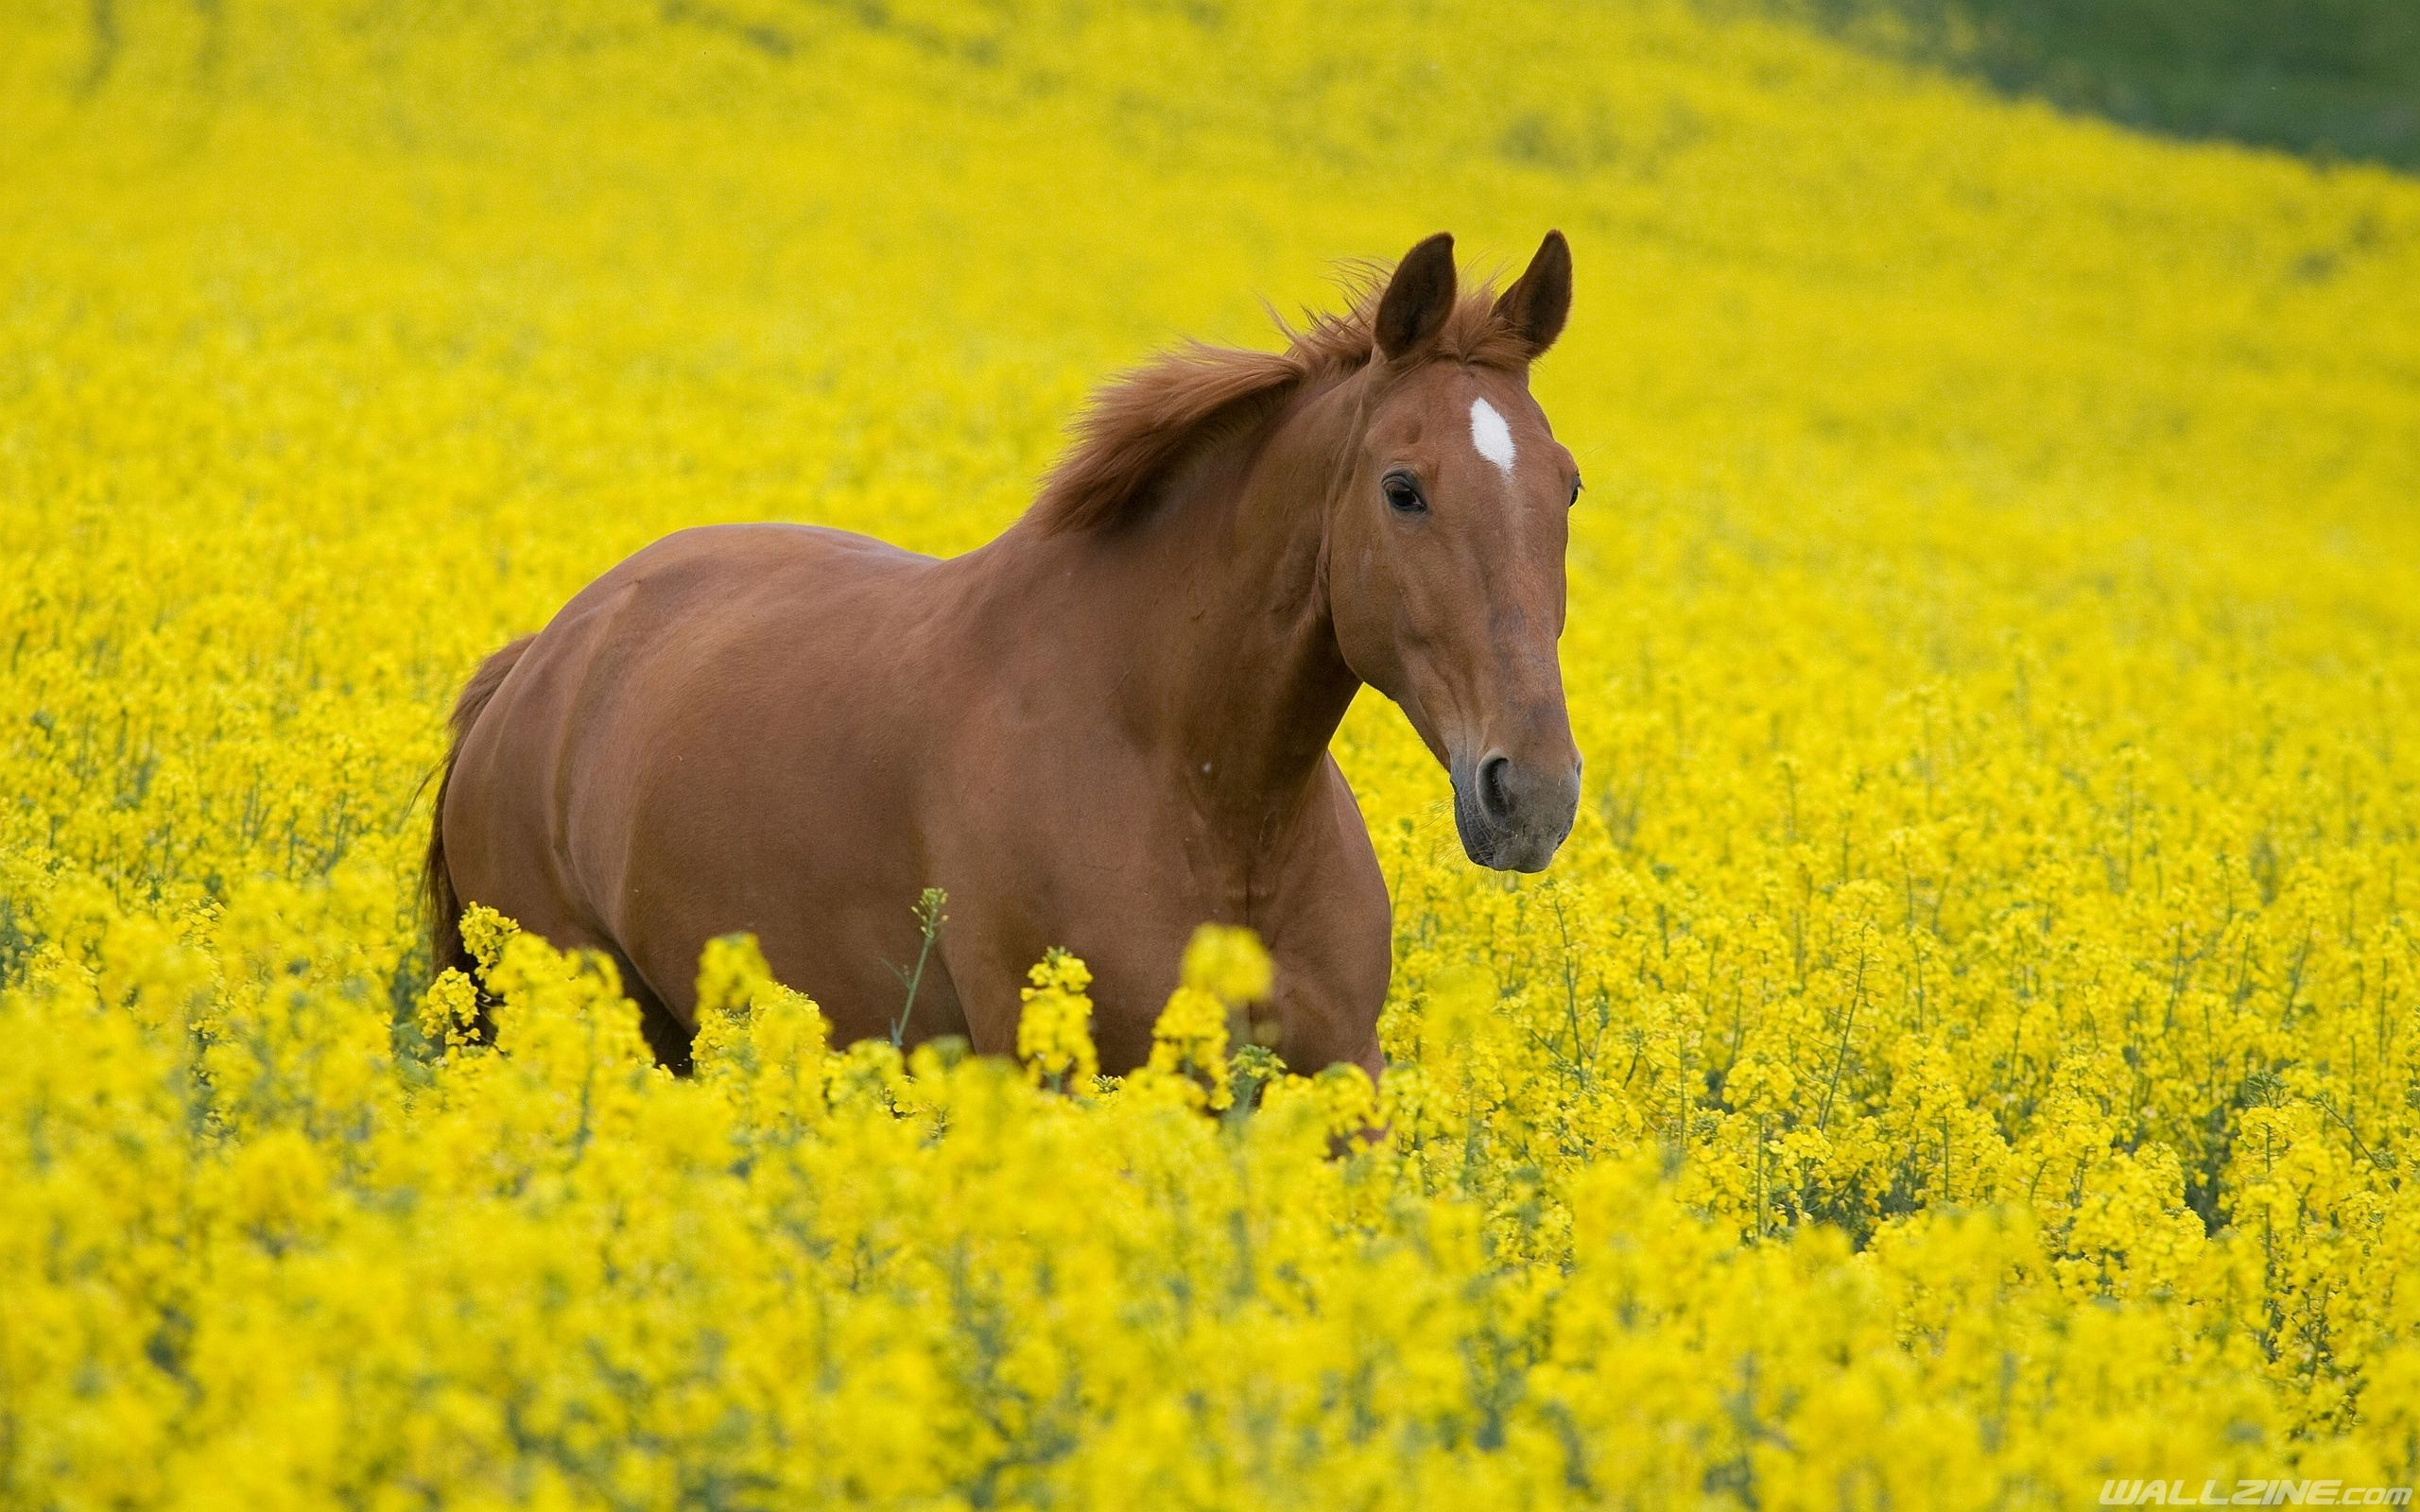 Horse Canola Field Wallpaper | HD Desktop Wallpapers | Pinterest ...